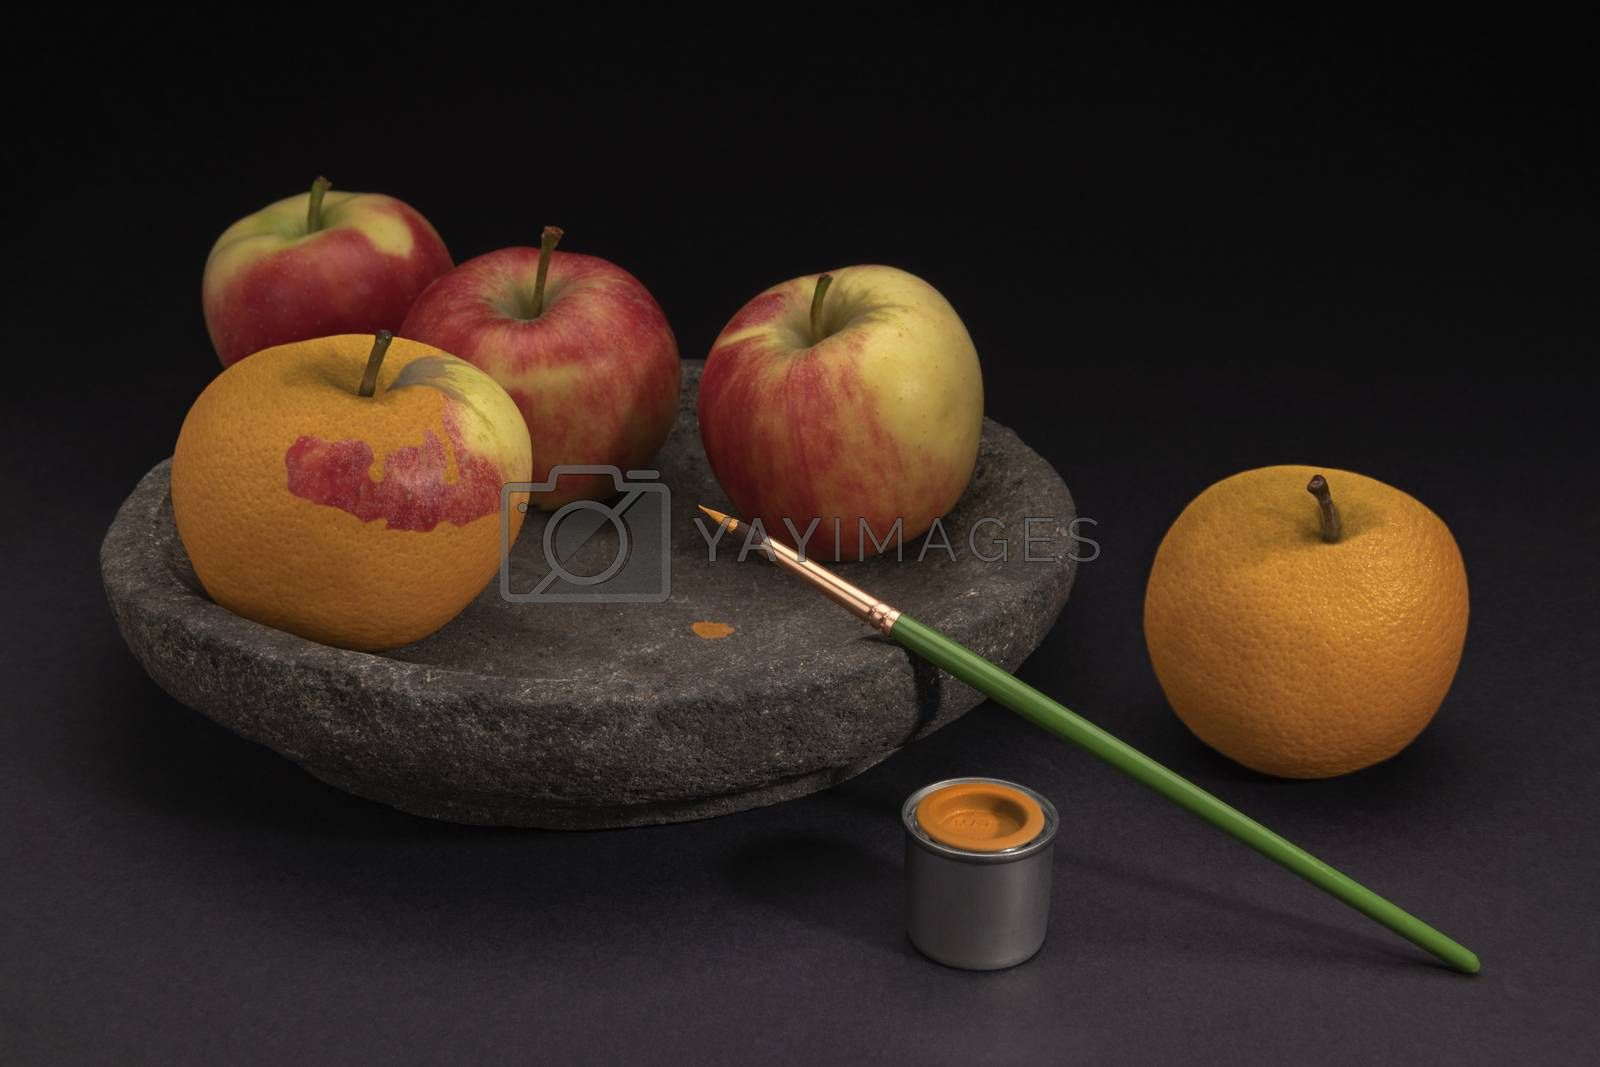 Surreal still life of fruit  by Tofotografie